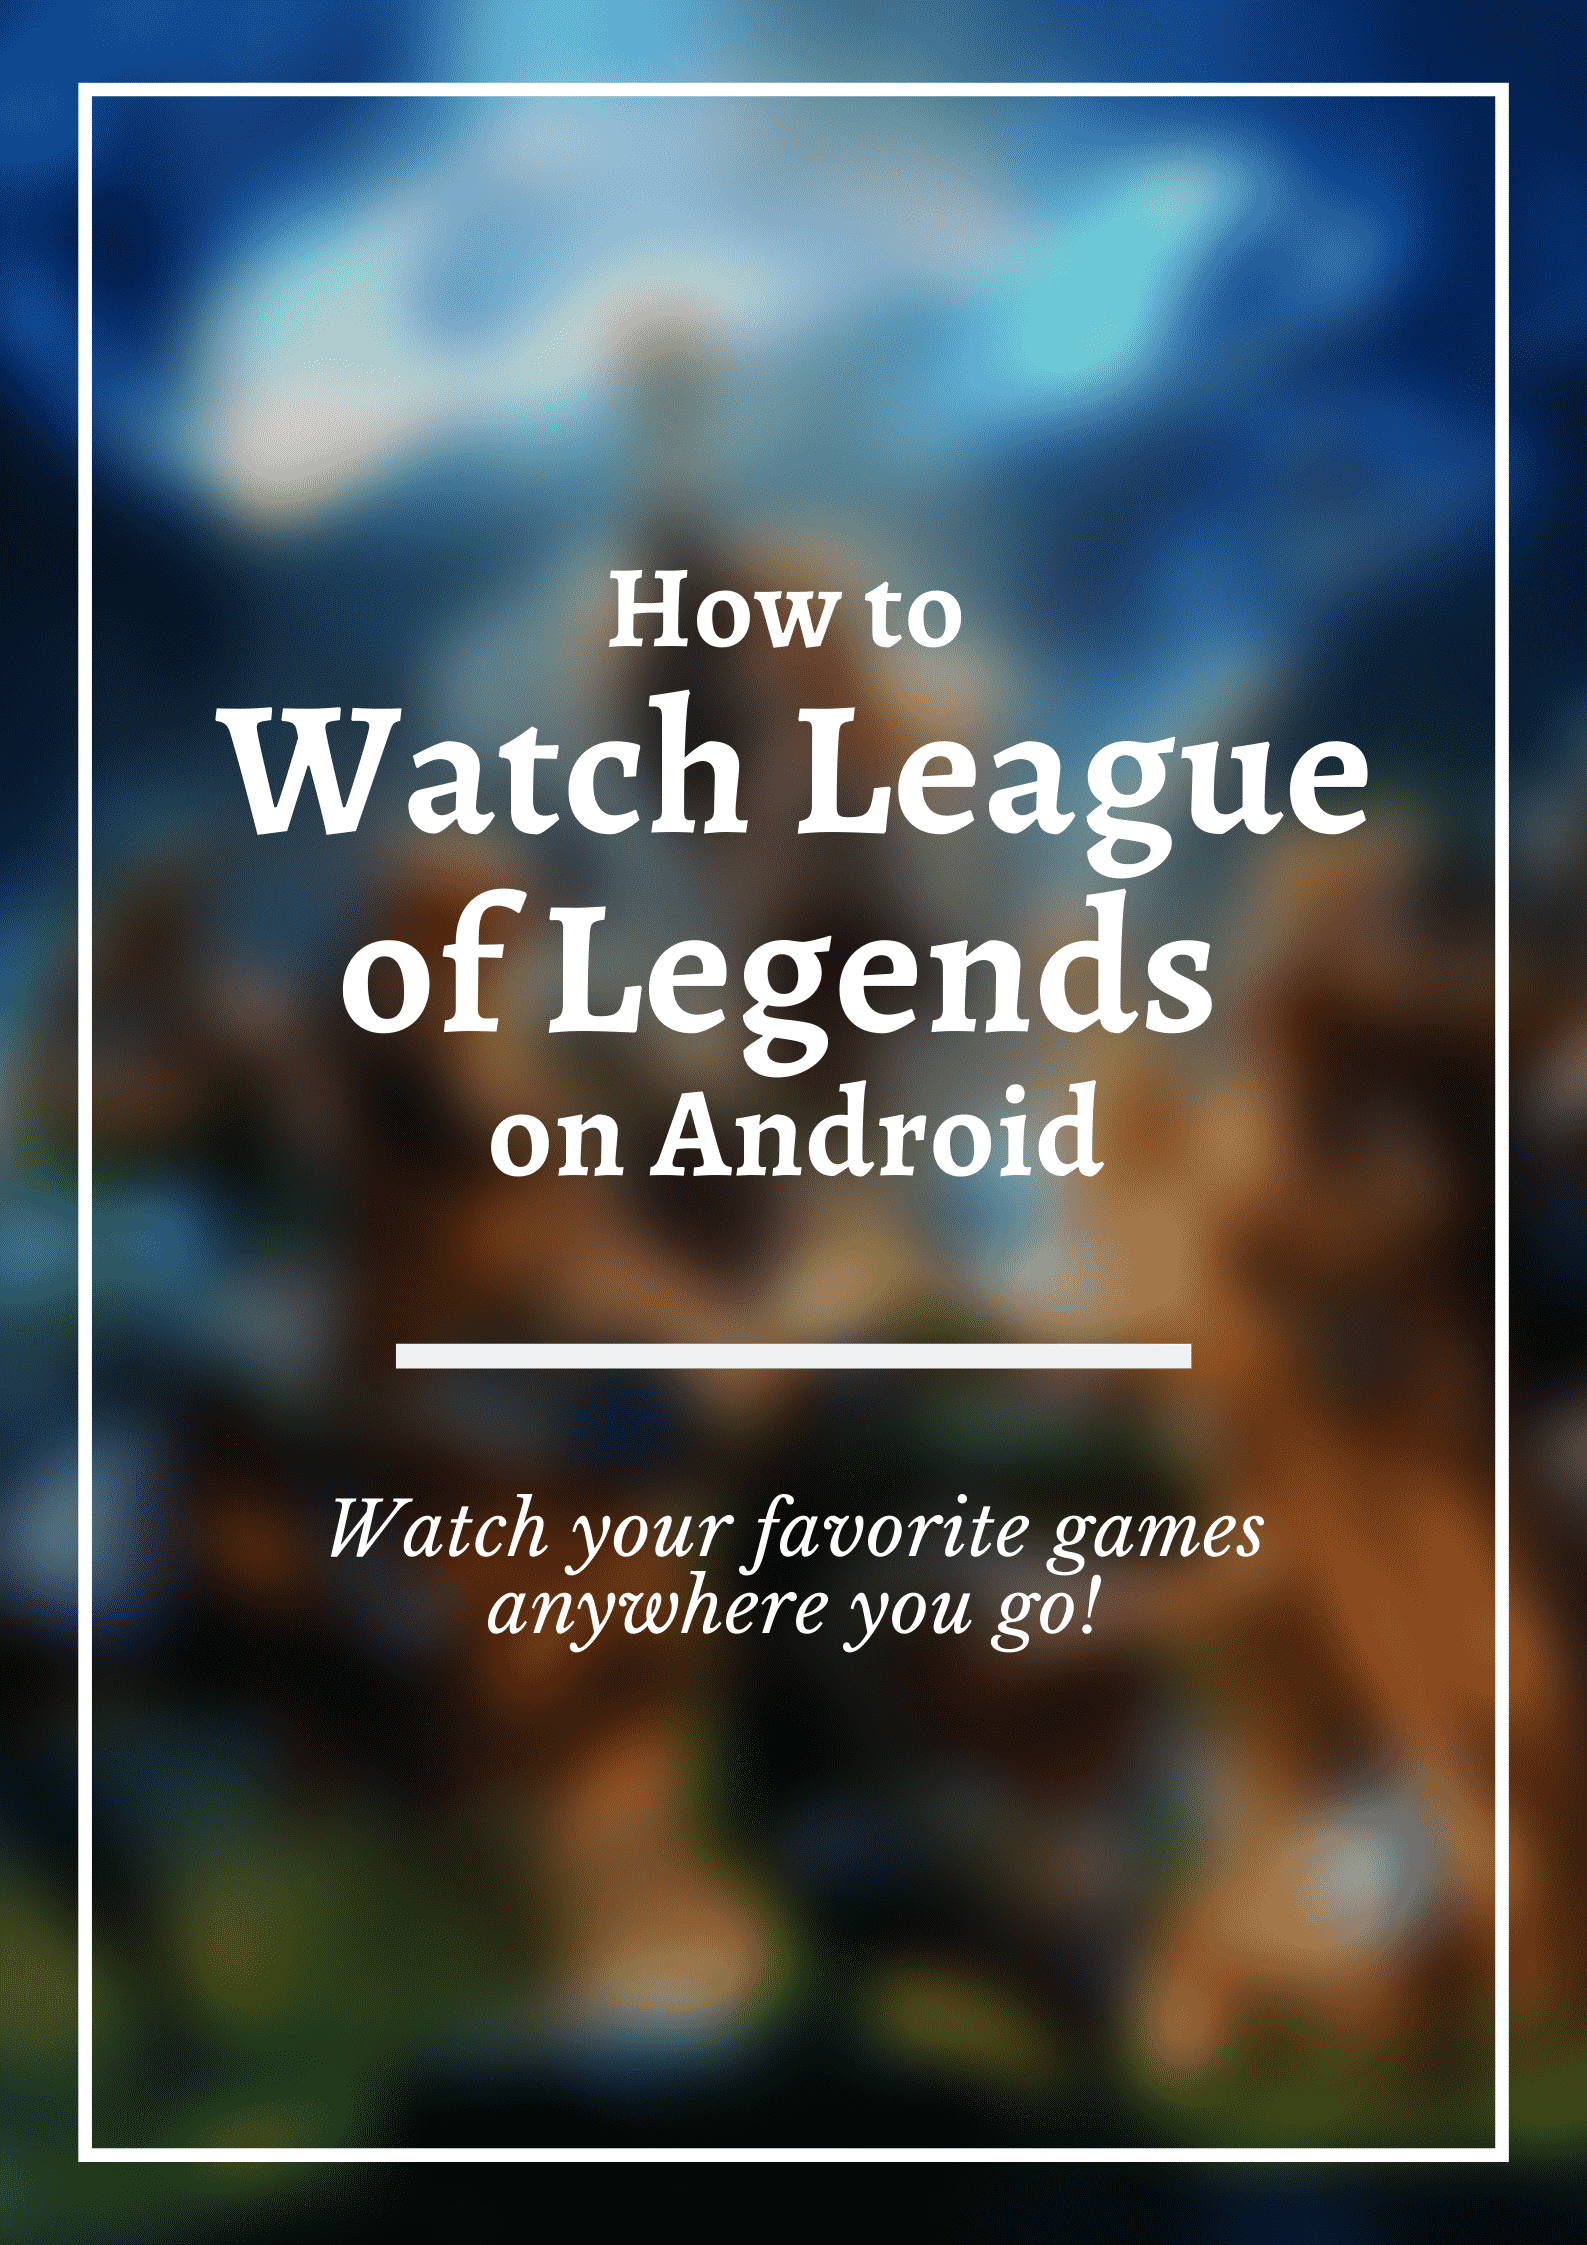 How to Watch League of Legends on Android - First Image